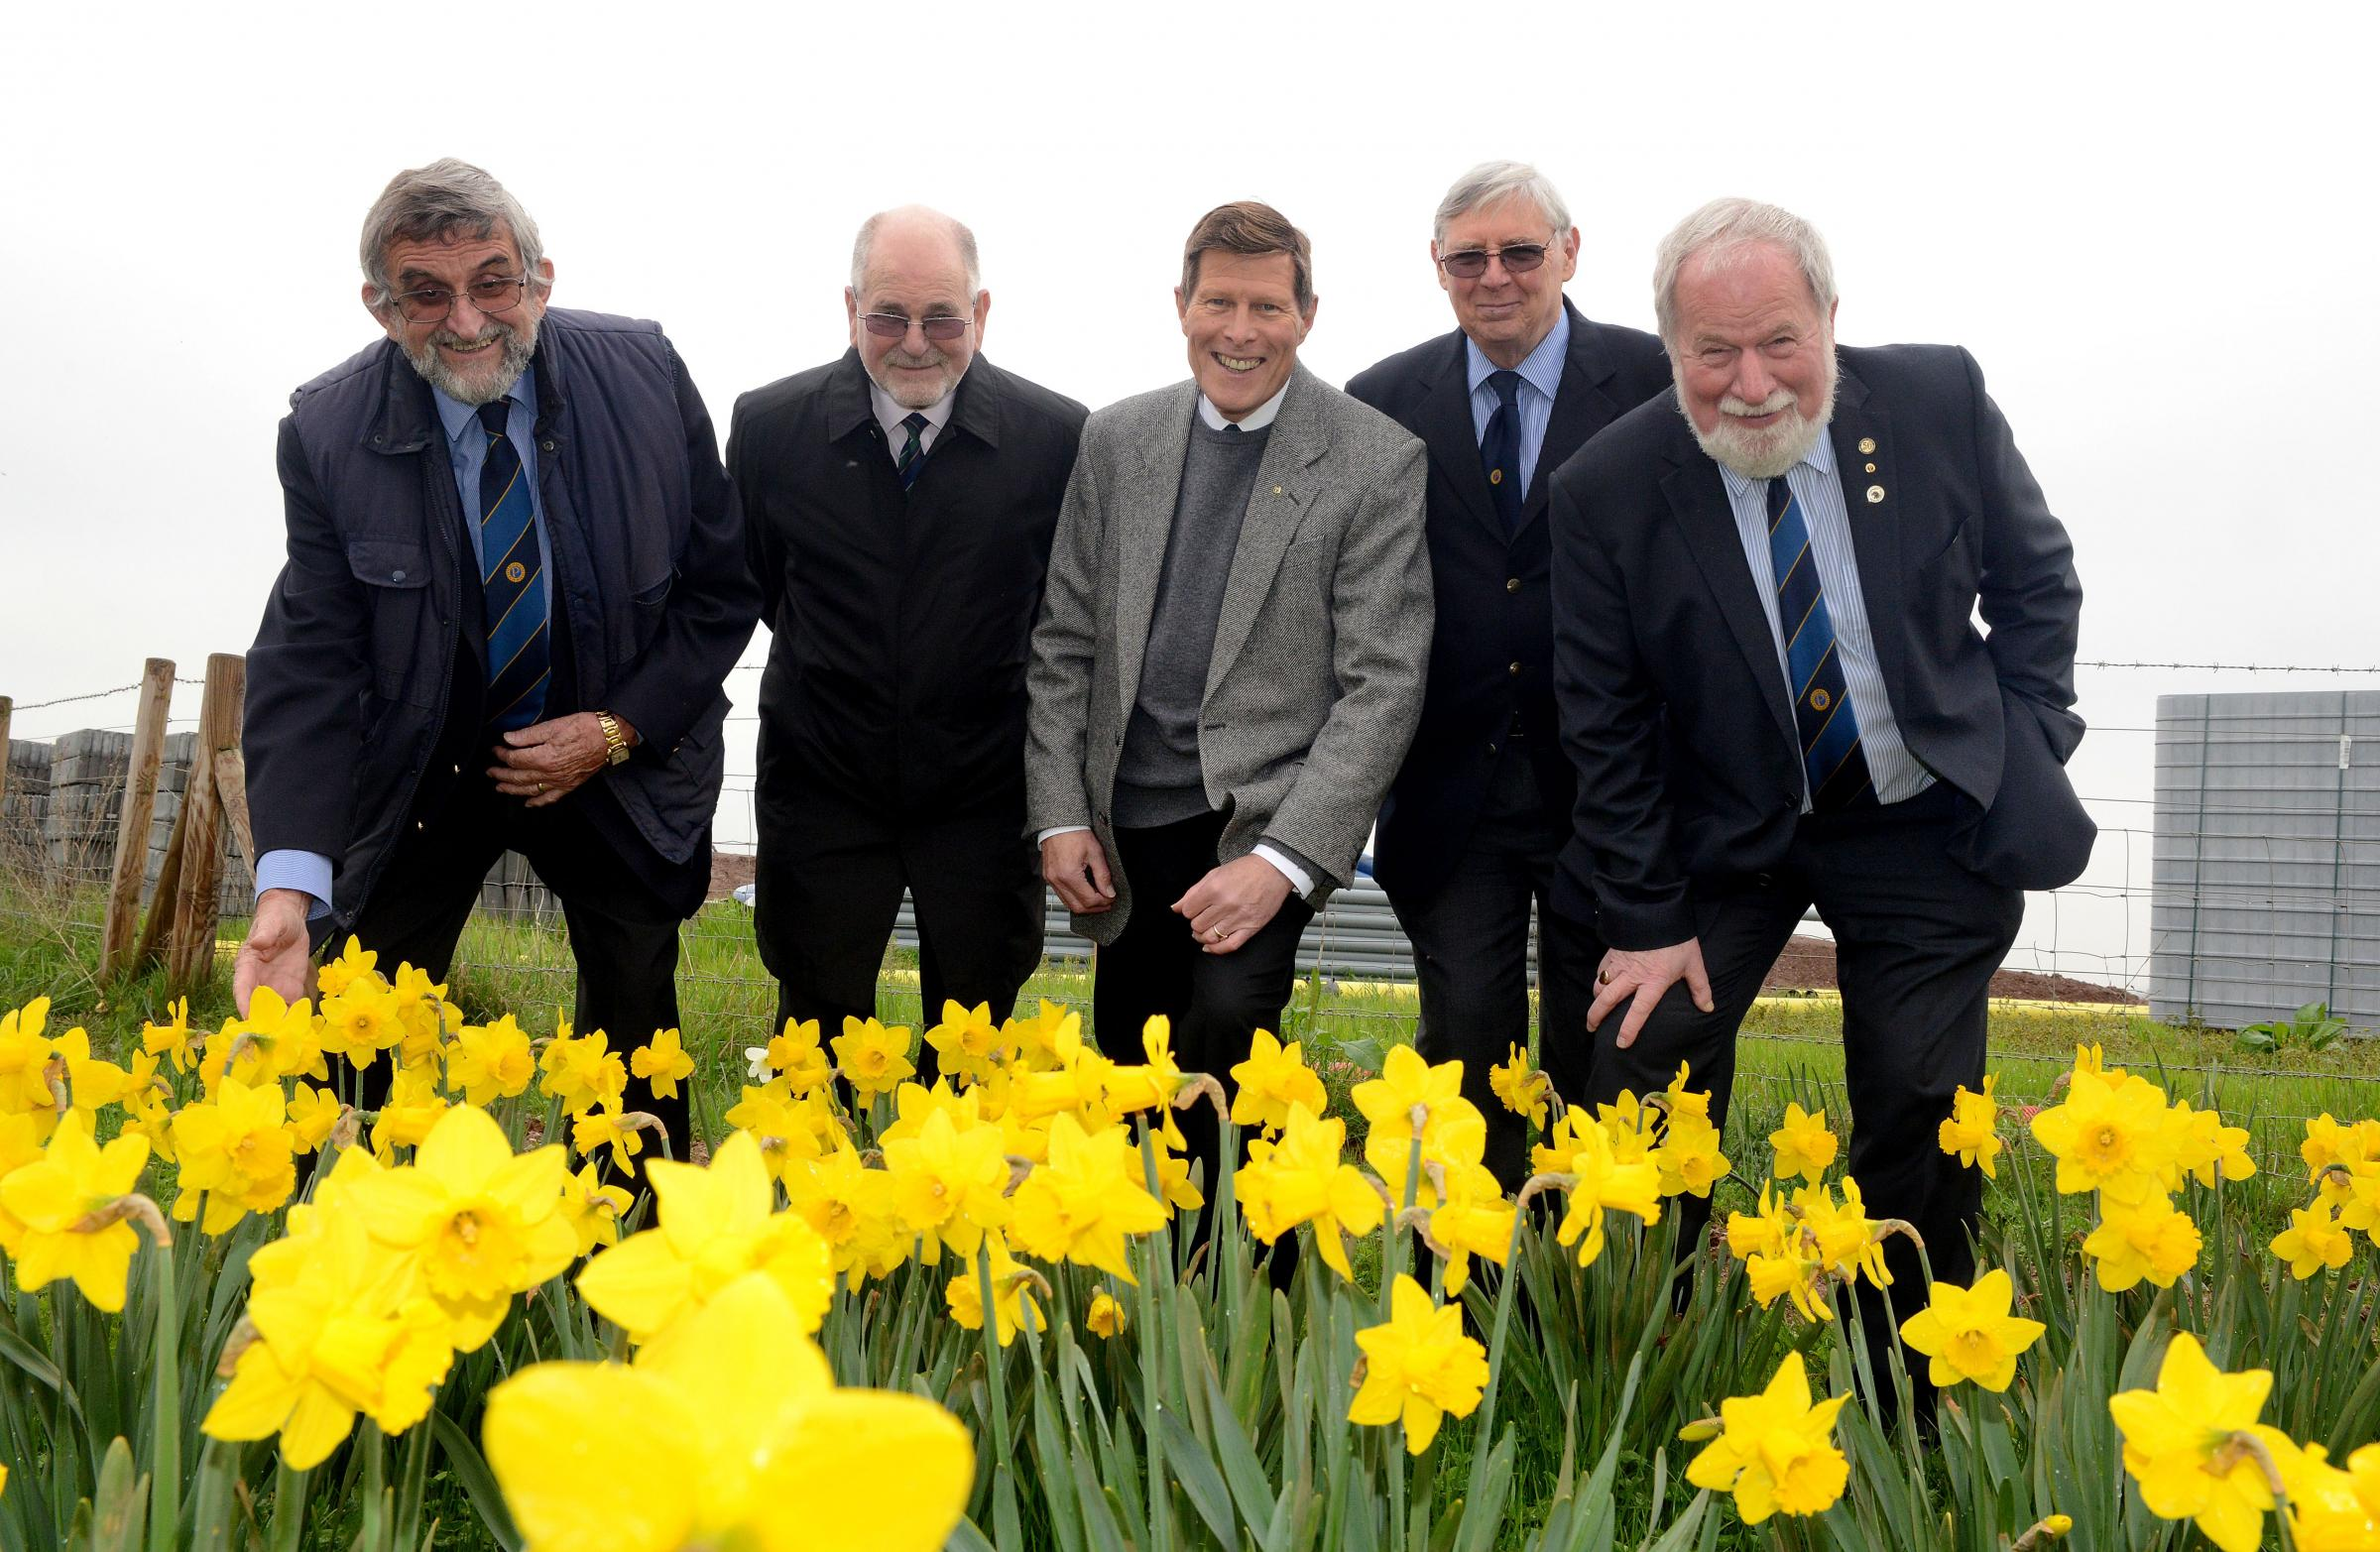 DELIGHTED: East Quantock Probus Club's Martin Lane, John Bishop, David Barge, Graham Wood and John Swayne